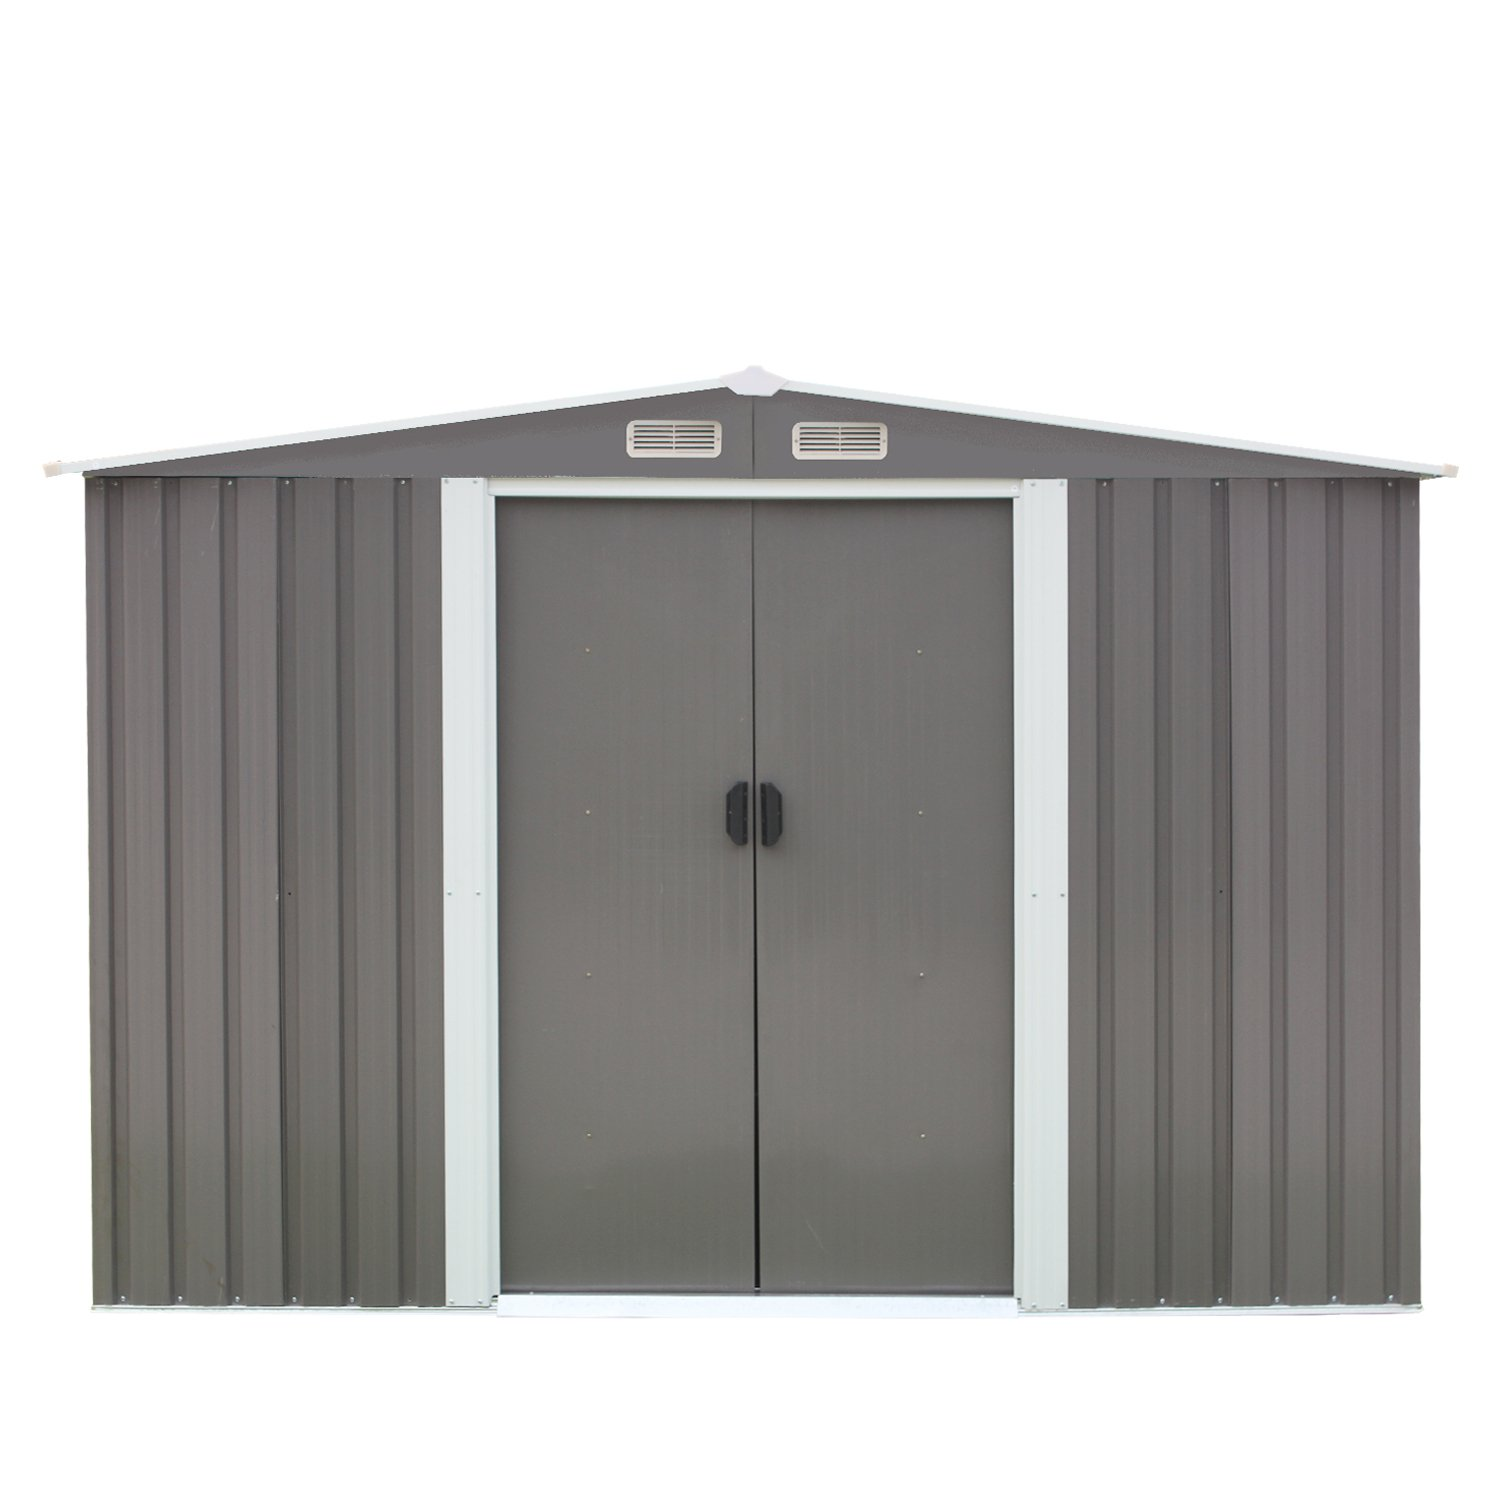 Kintness 8 x 6 Outdoor Steel Garden Storage Utility Tool Shed Backyard Lawn Grey w//Door